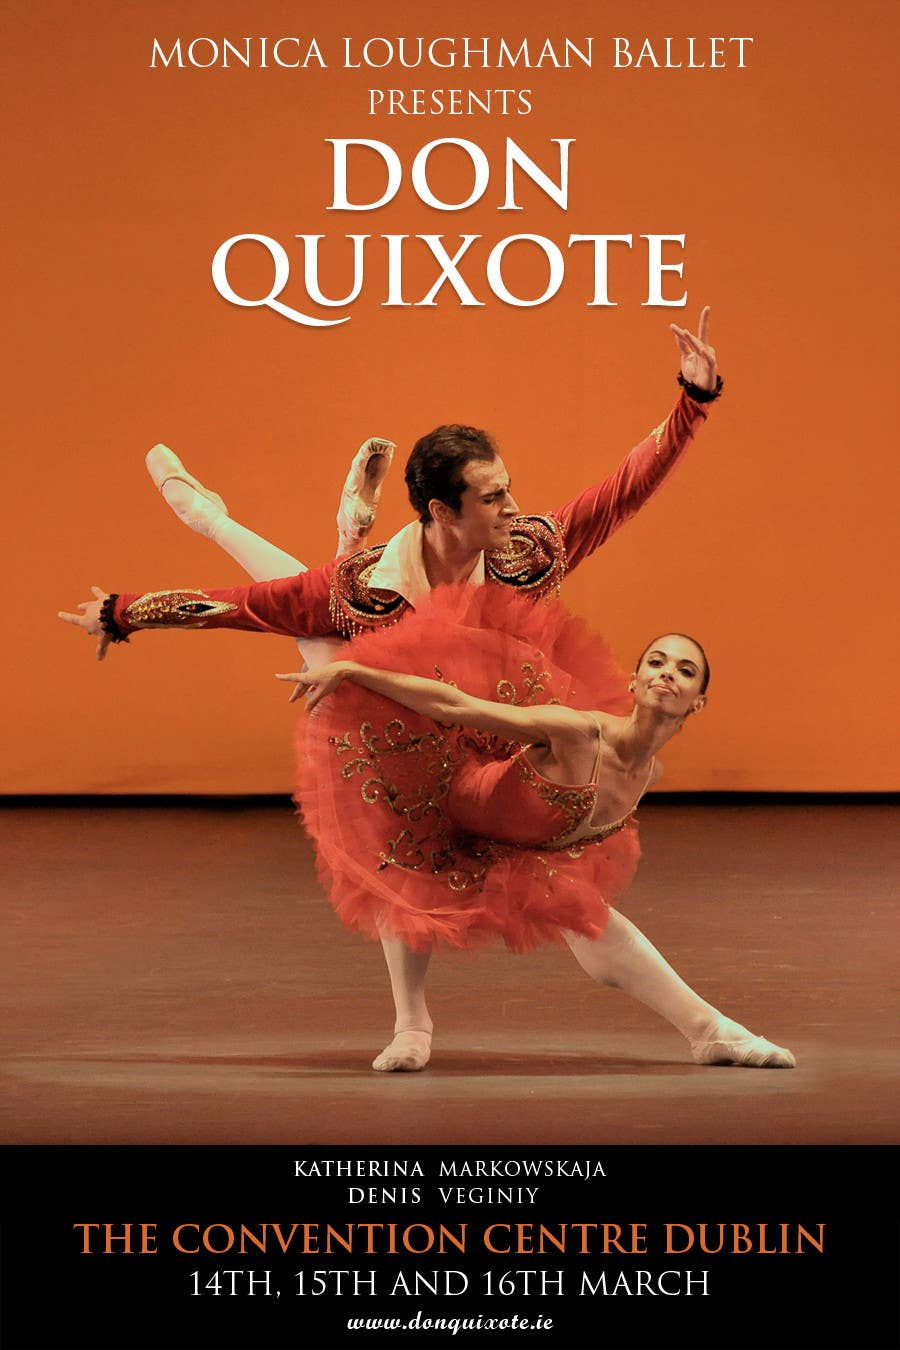 #250 for Graphic Design for Classical ballet event called Don Quixote by GDesignGe